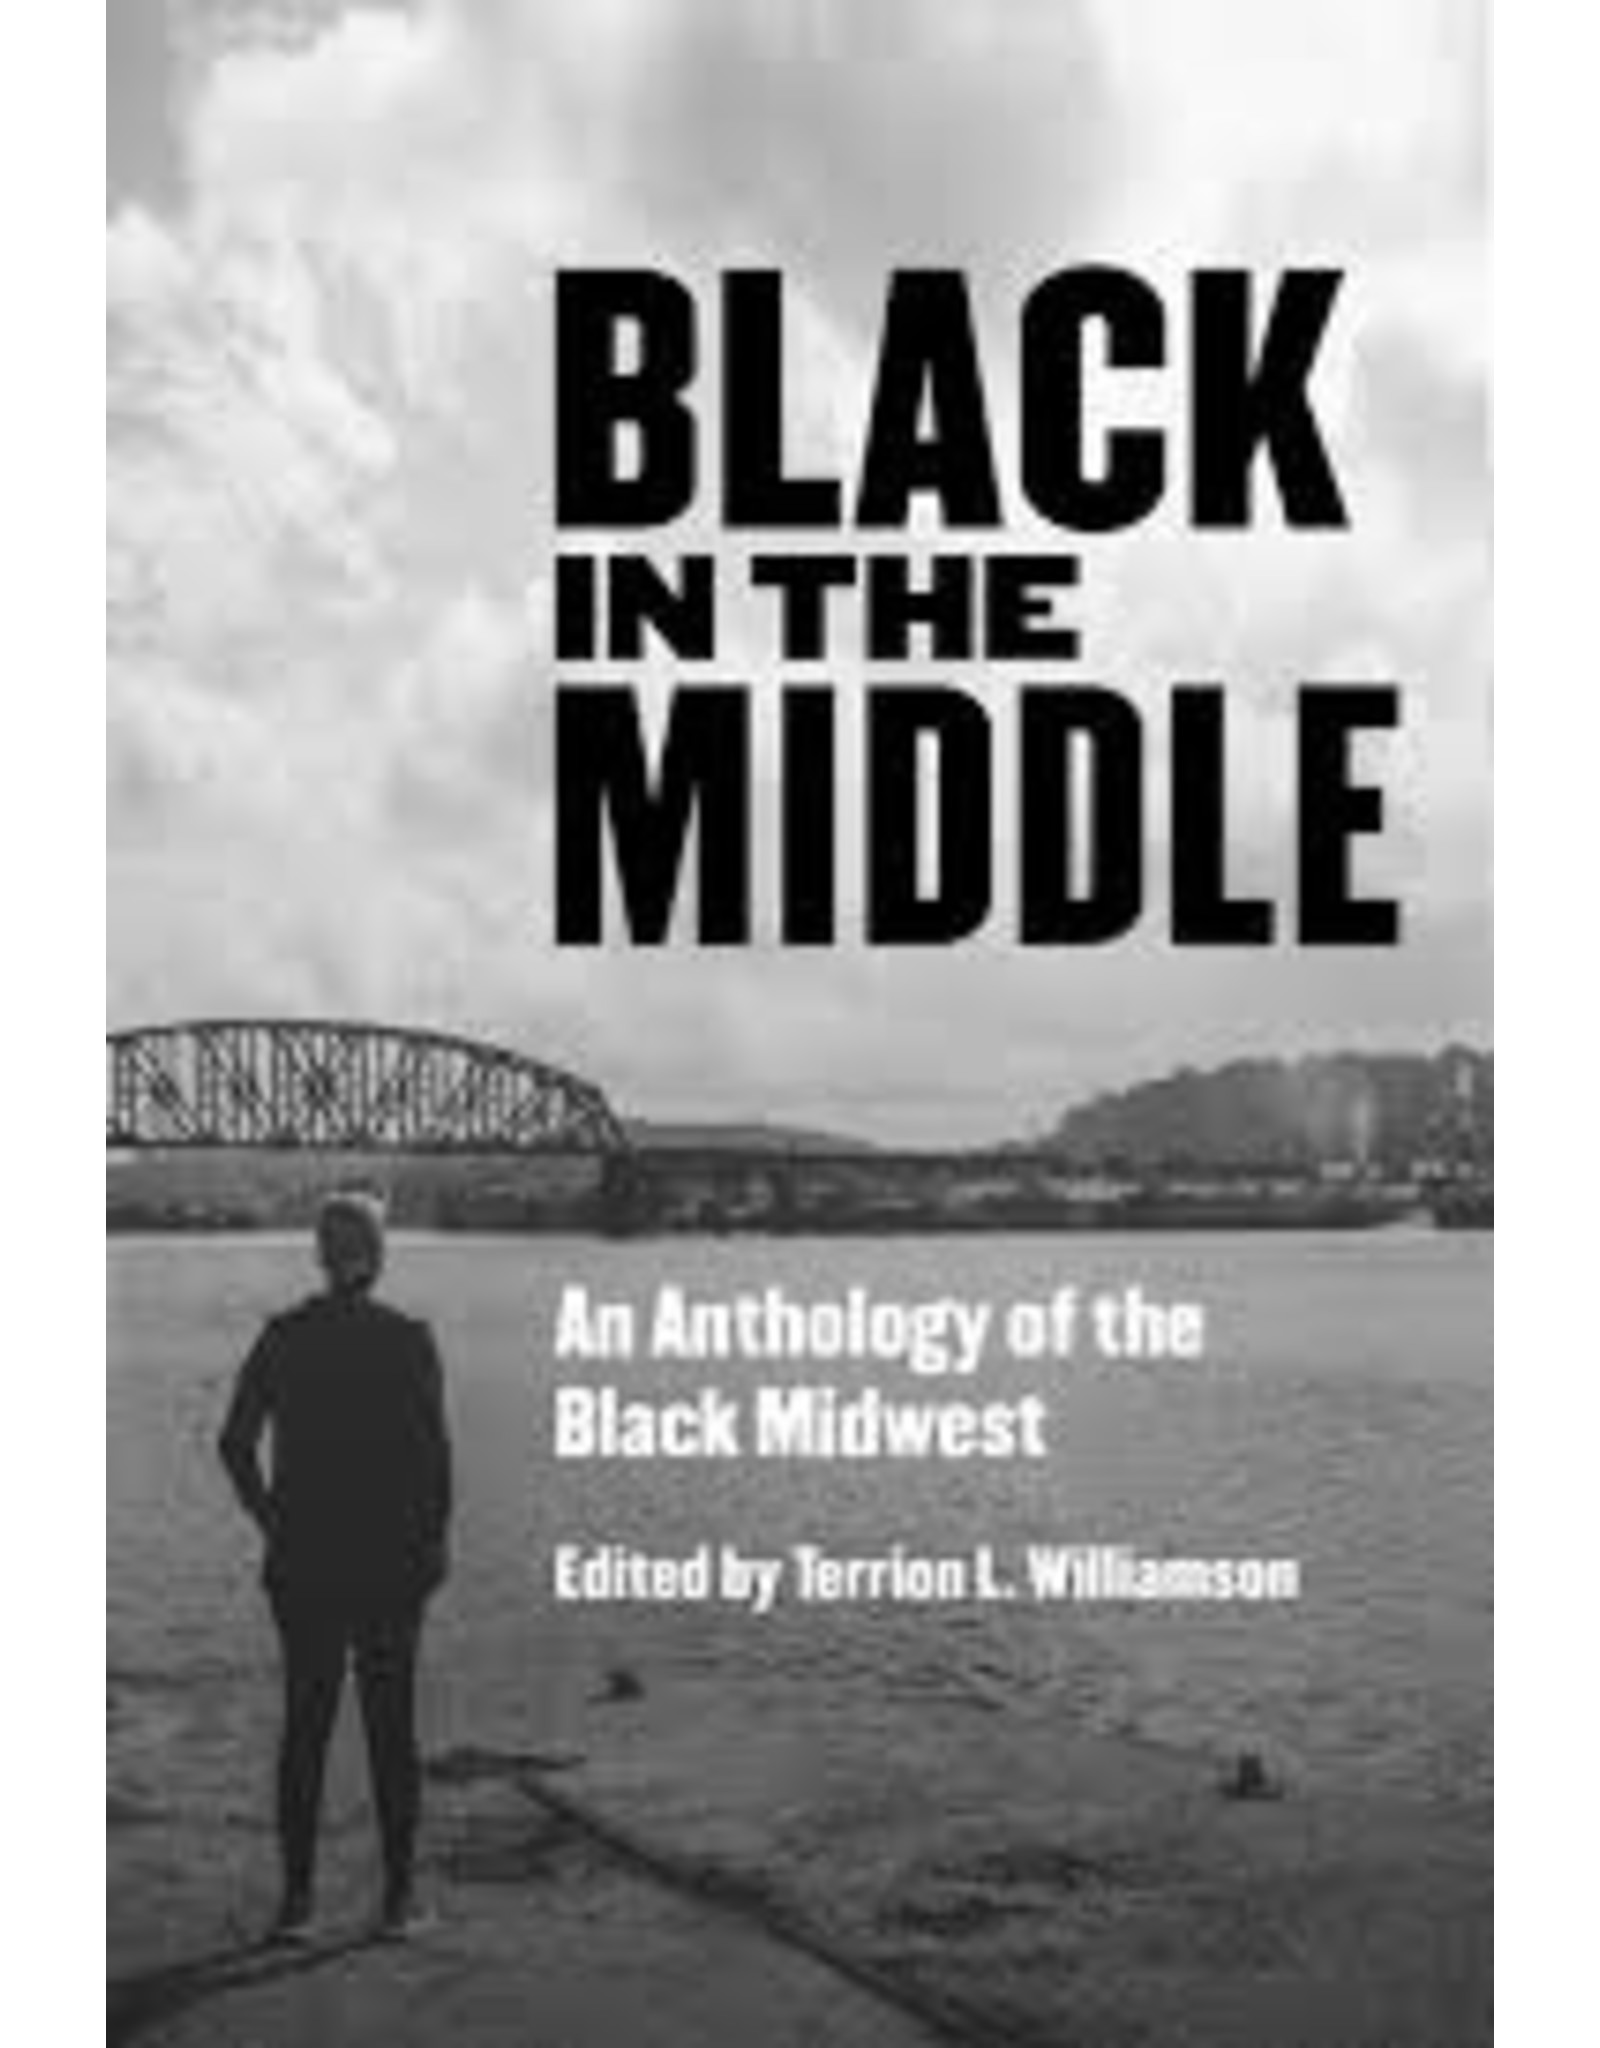 Books Black in the Middle: An Anthology of the Black Midwest Edited by Terrion L. Williamson